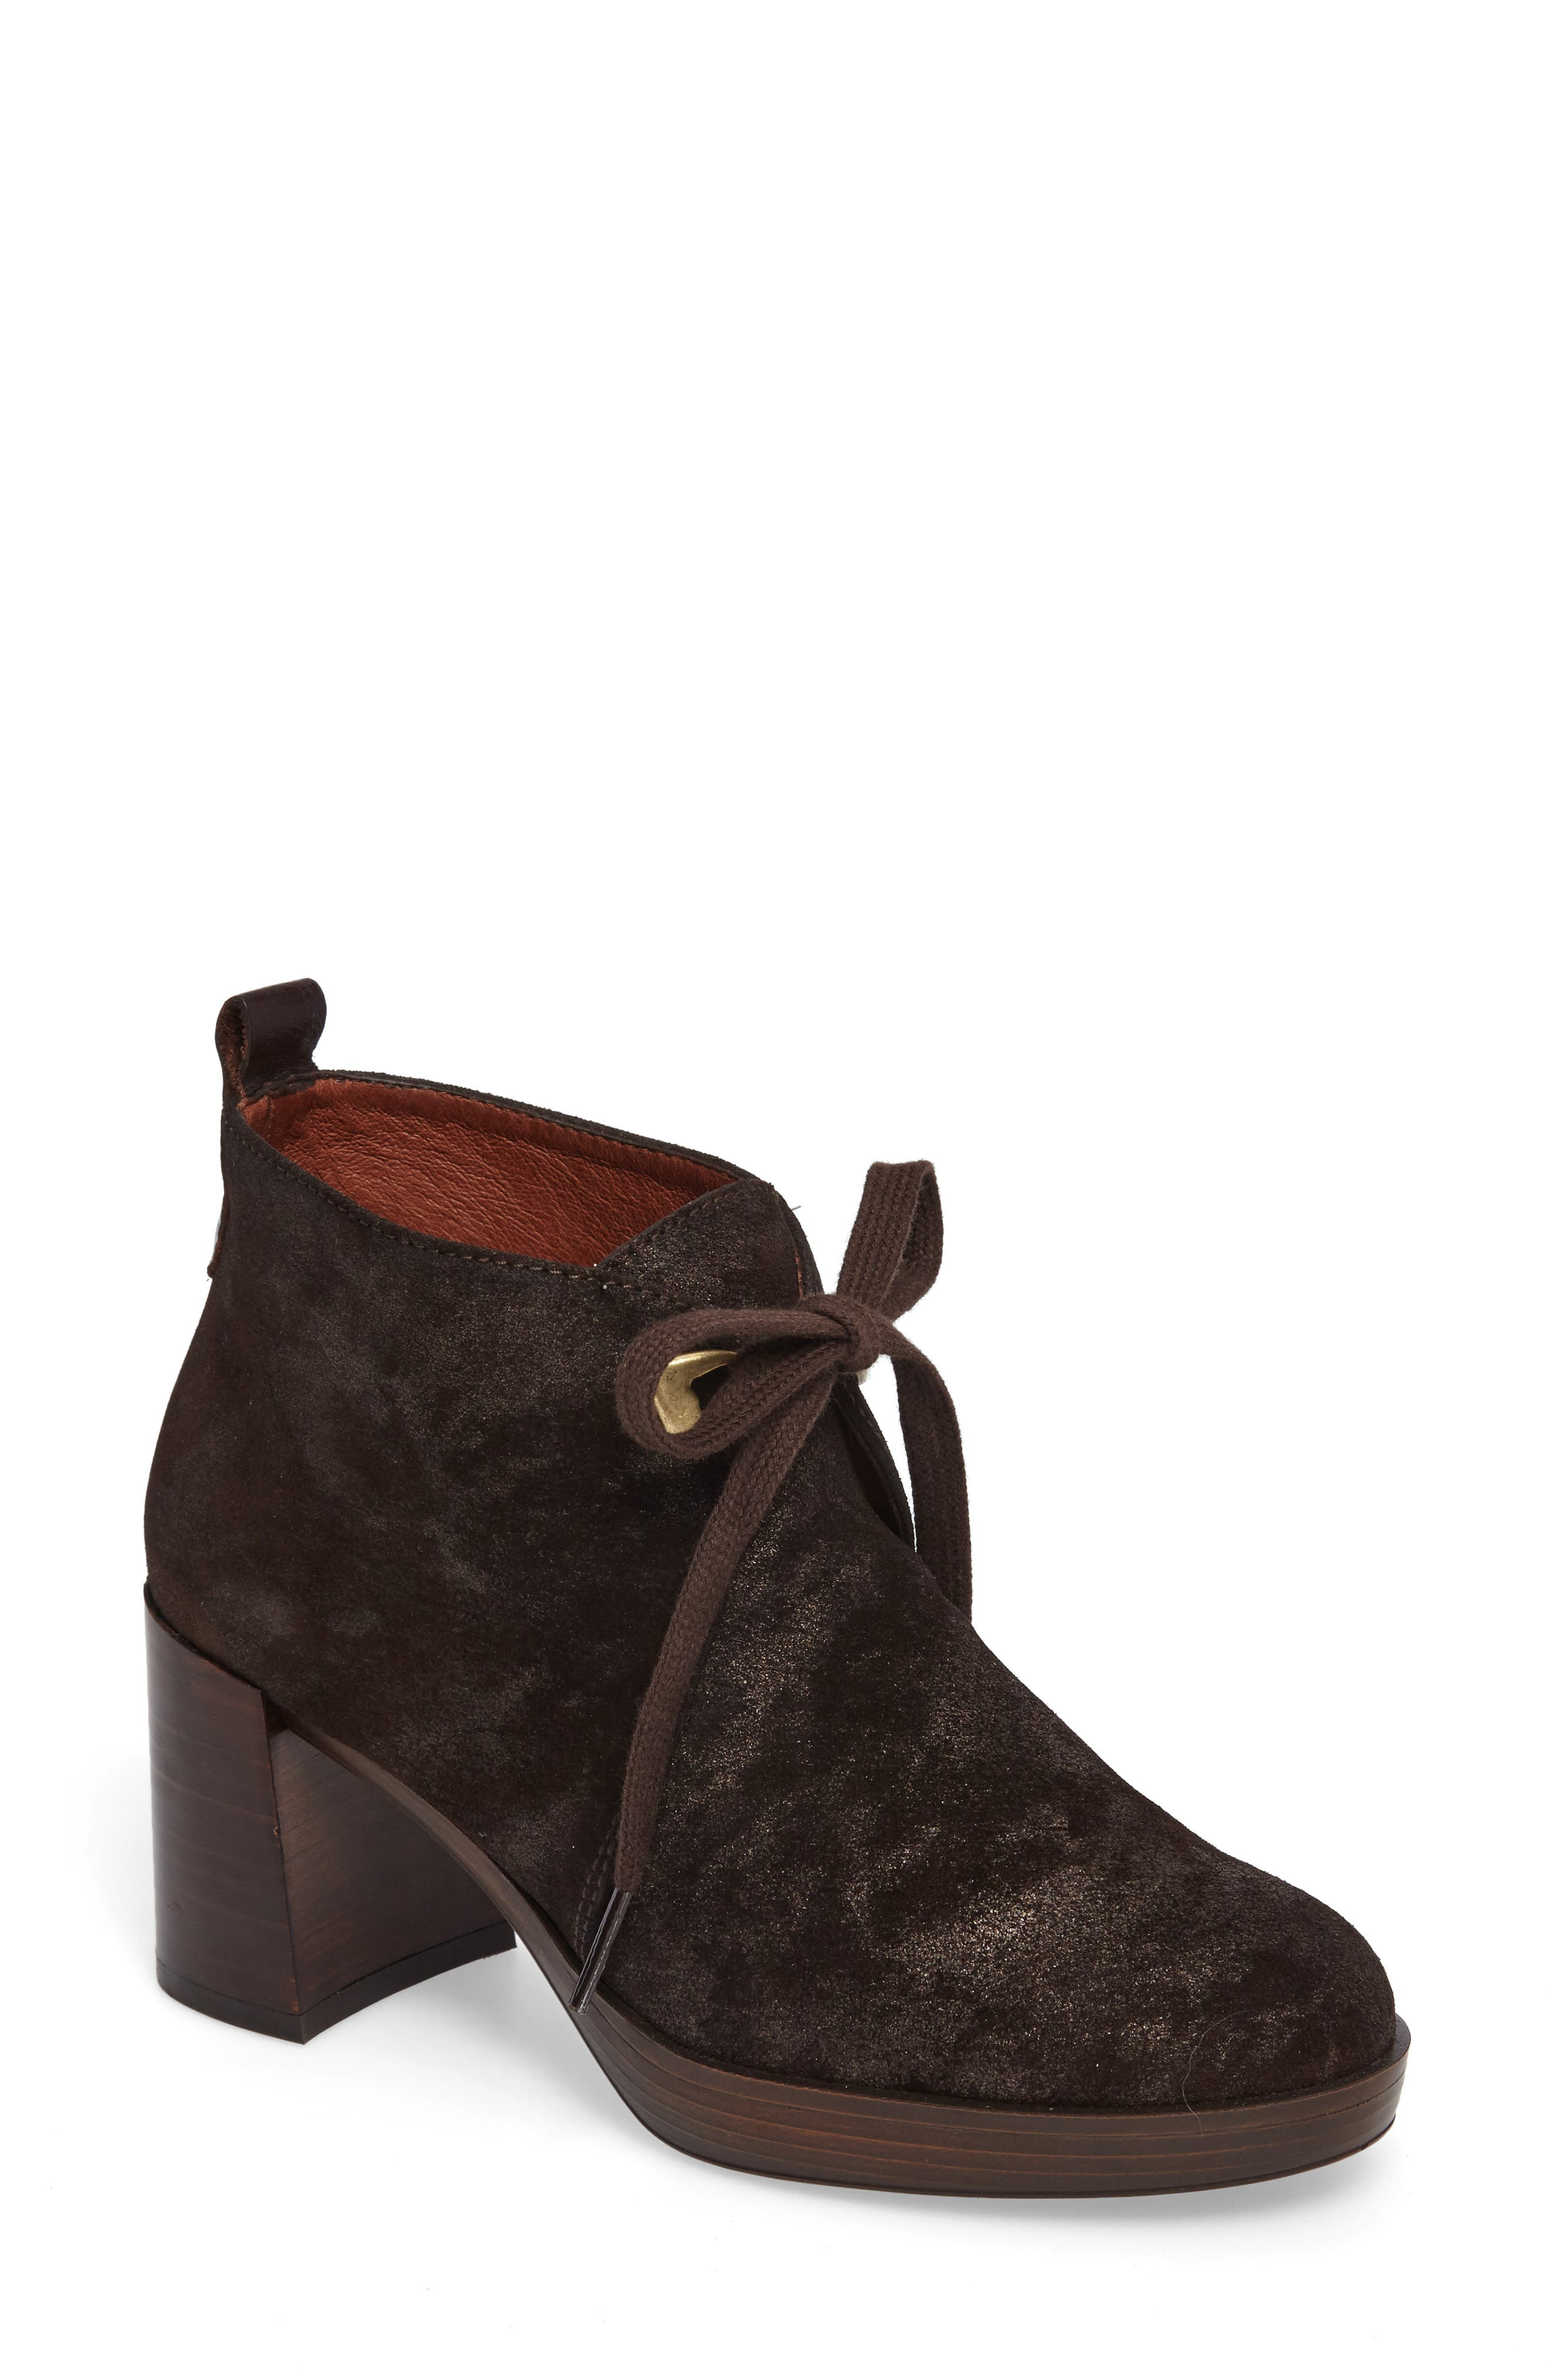 Dasia Bow Bootie,                             Main thumbnail 1, color,                             200